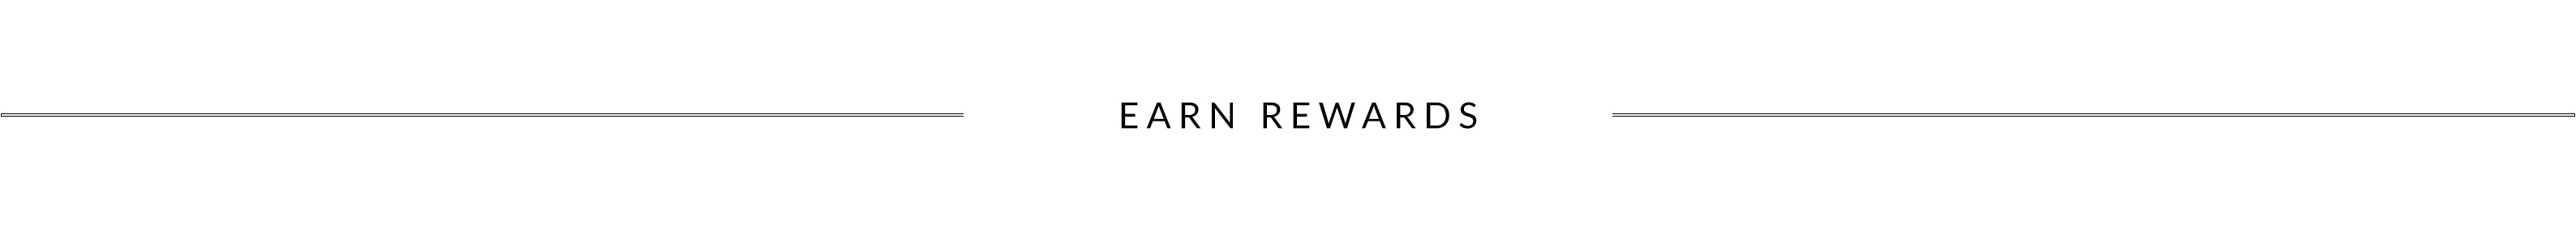 How to earn rewards